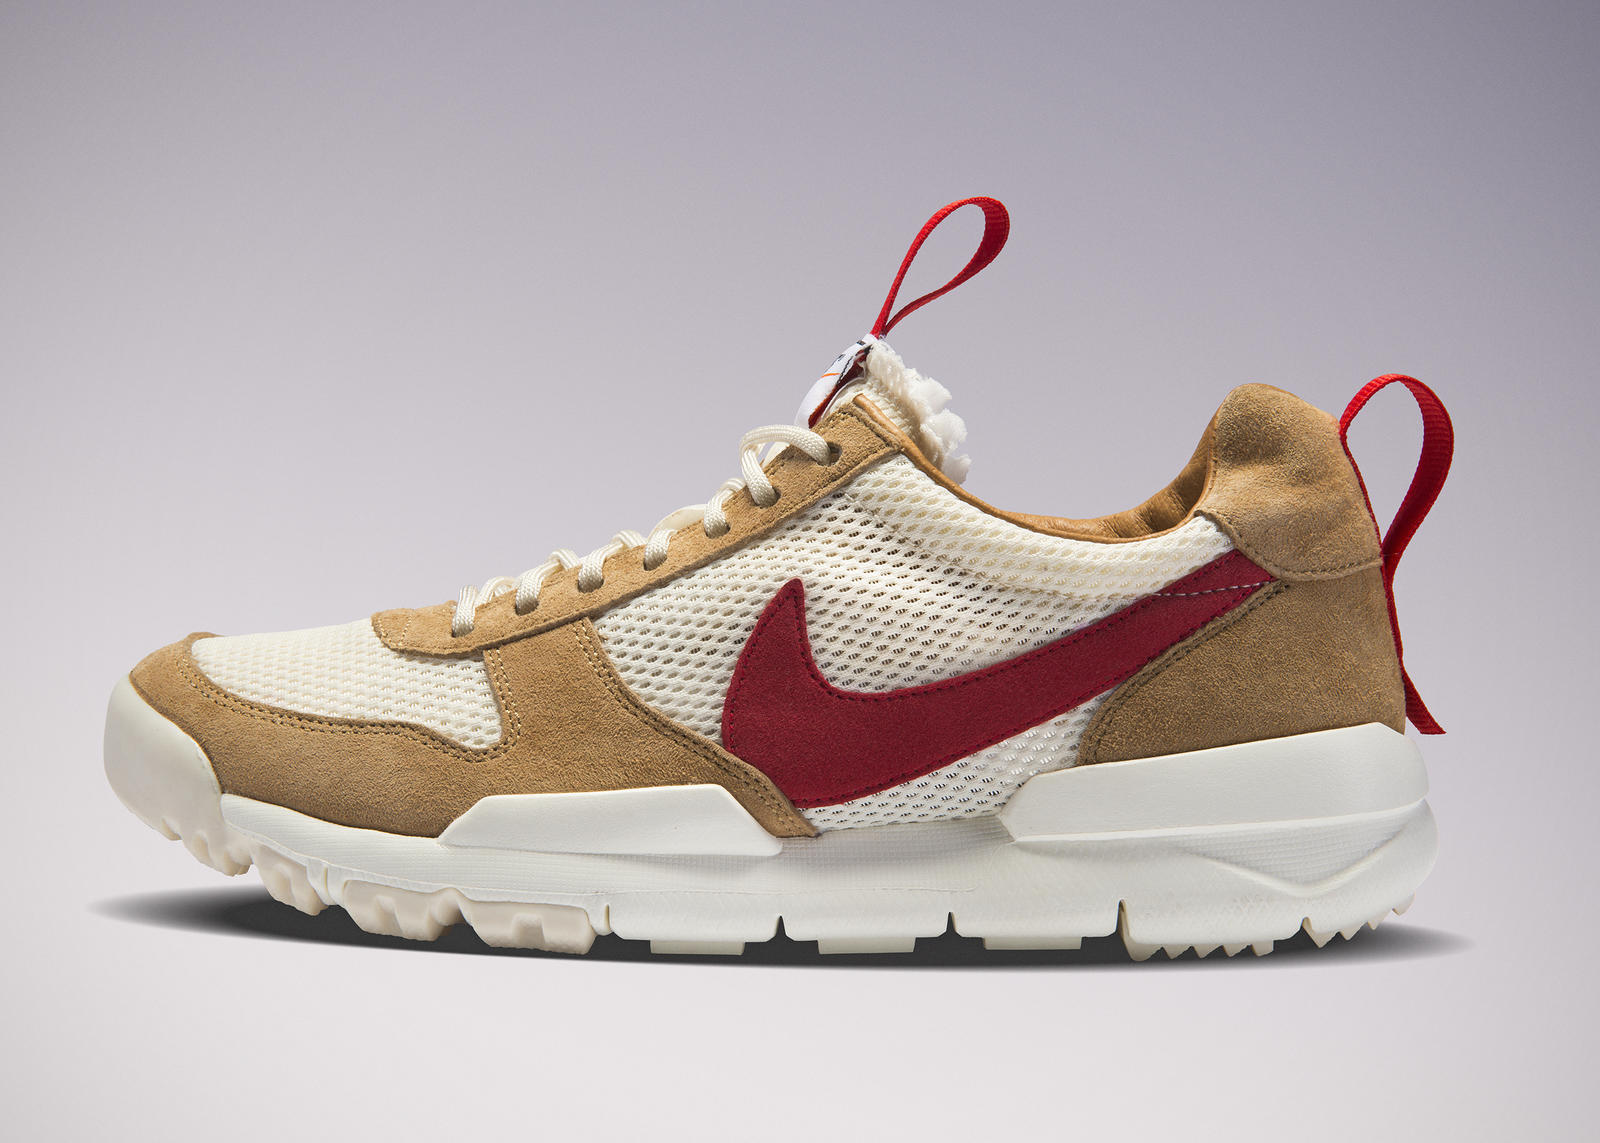 Nike and Tom Sachs' Introduce the NikeLab Mars Yard 2.0 4